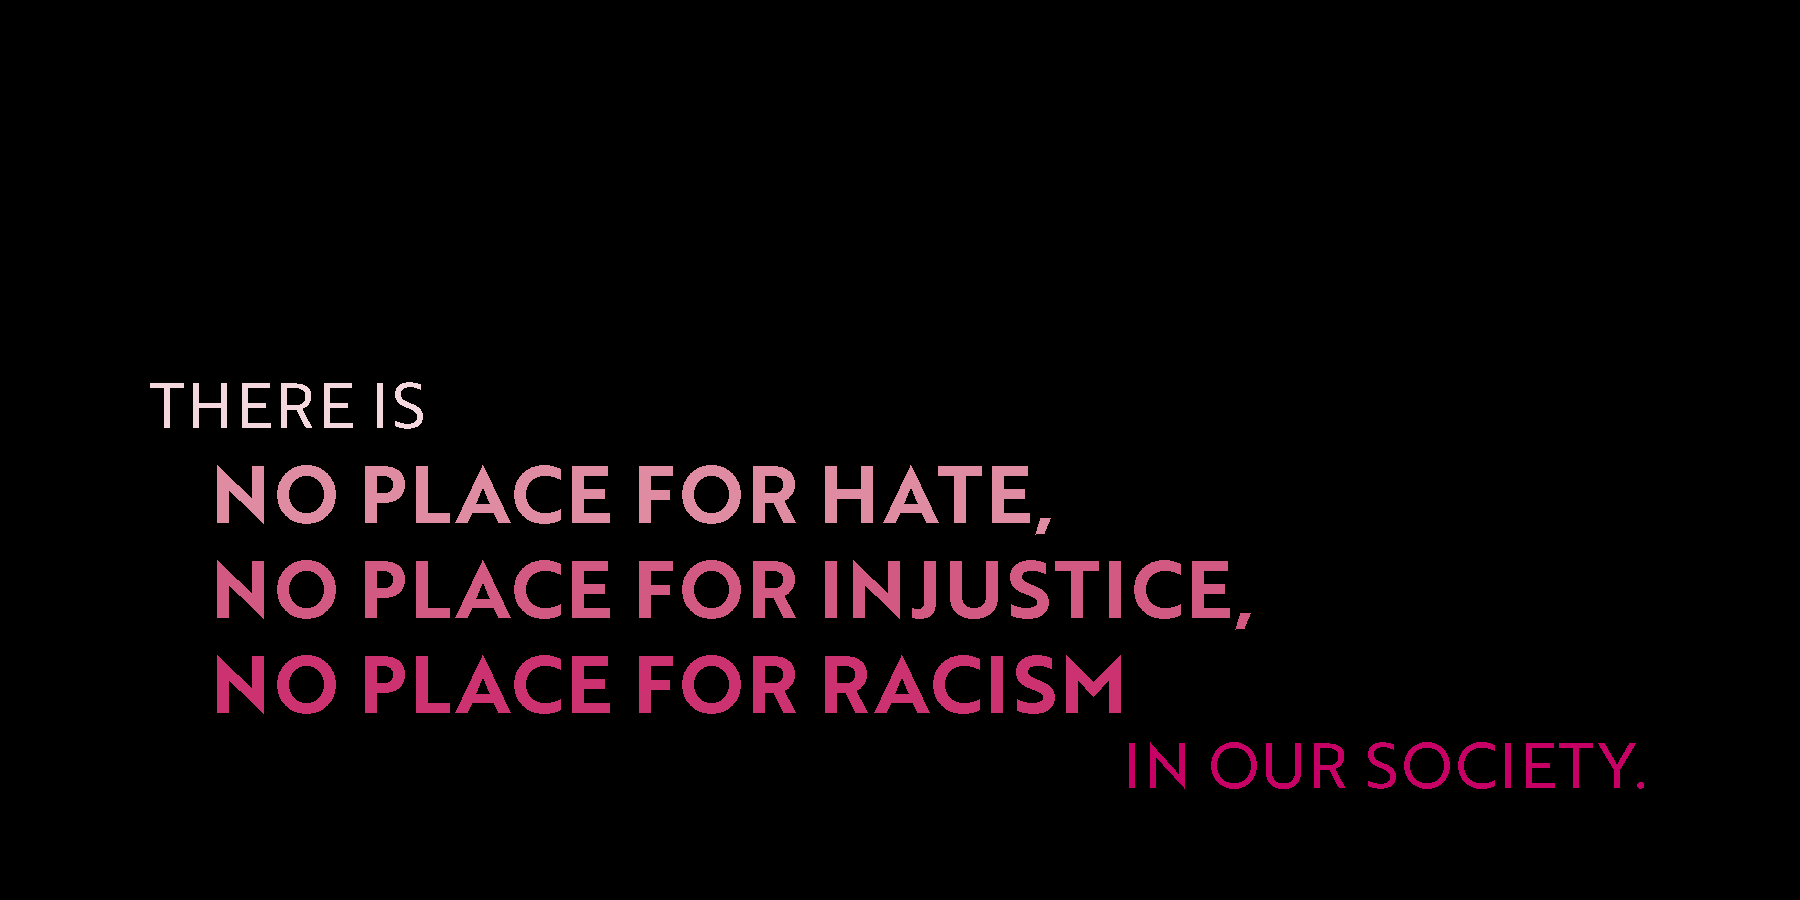 No Place for Hate, Injustice, and Racism.